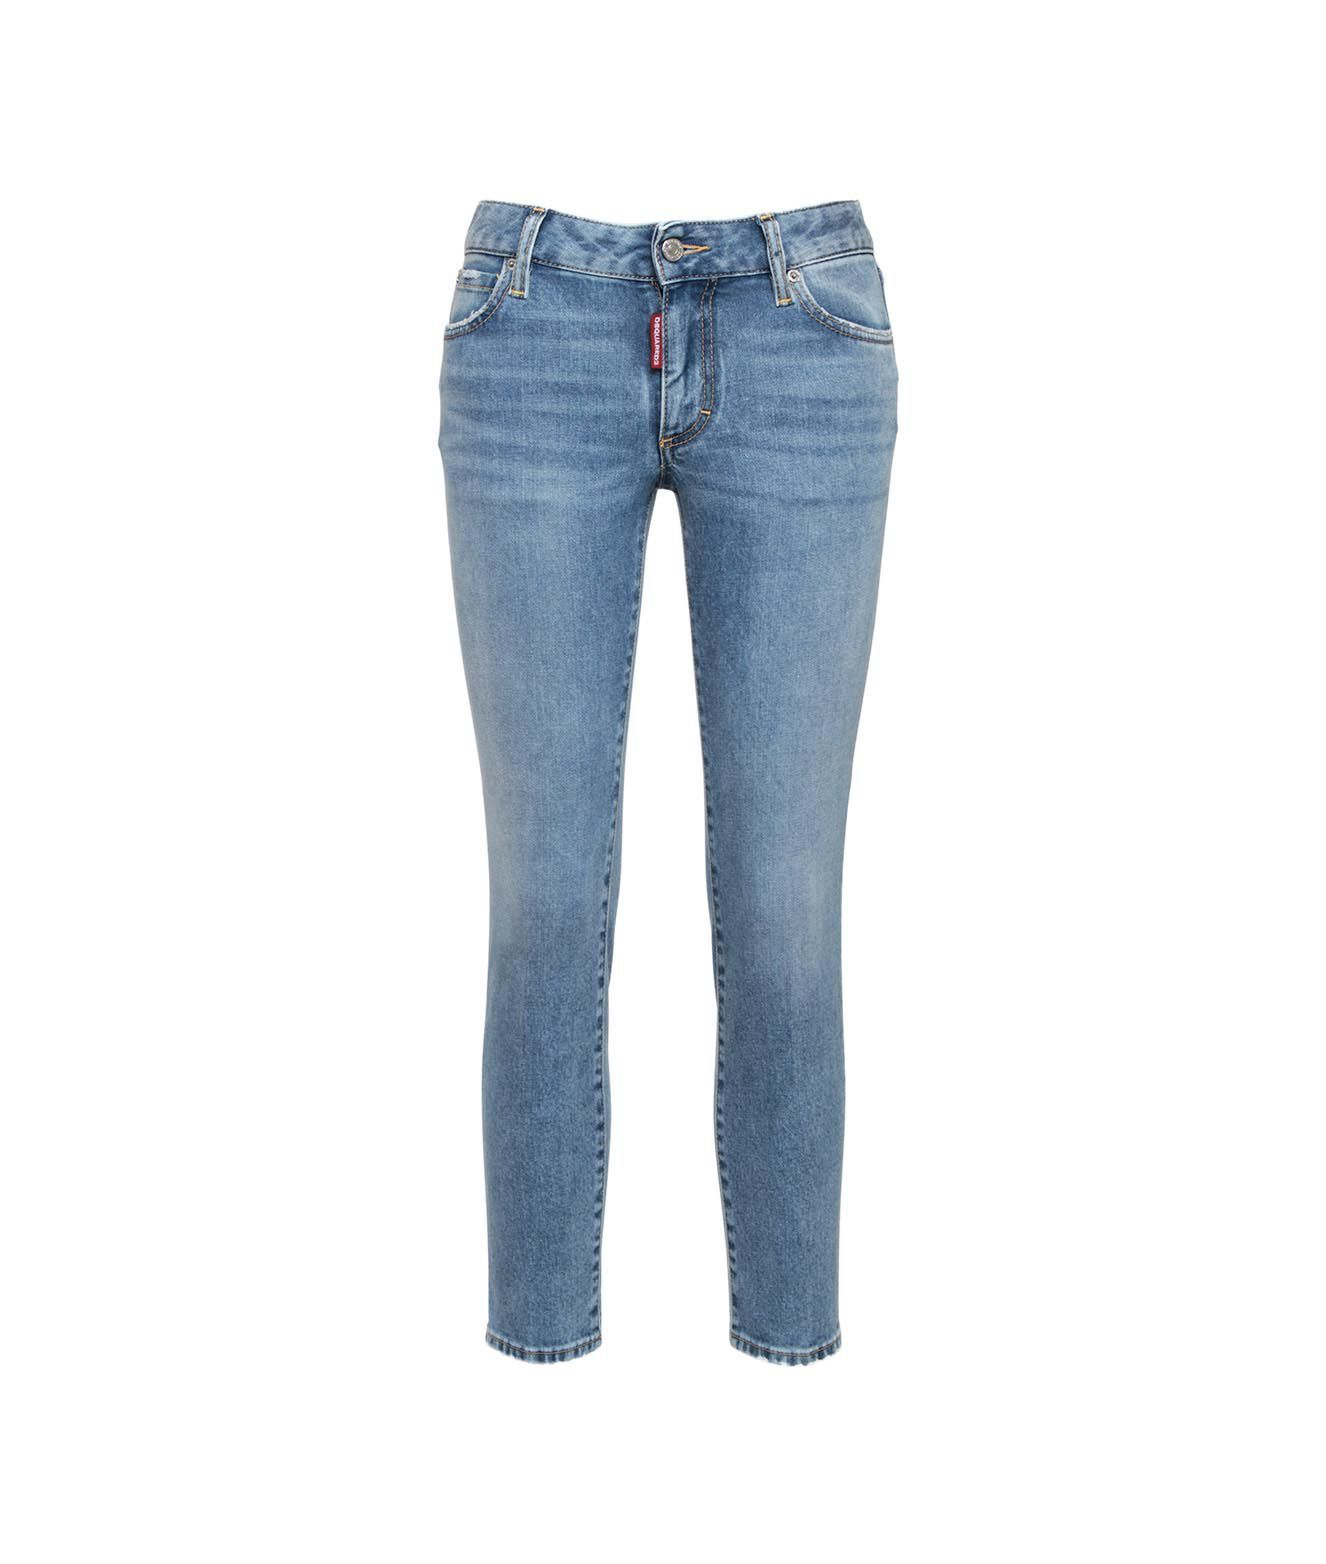 Dsquared2 Jeans DSQUARED2 WOMEN'S S75LB0471S3059511470 BLUE OTHER MATERIALS JEANS